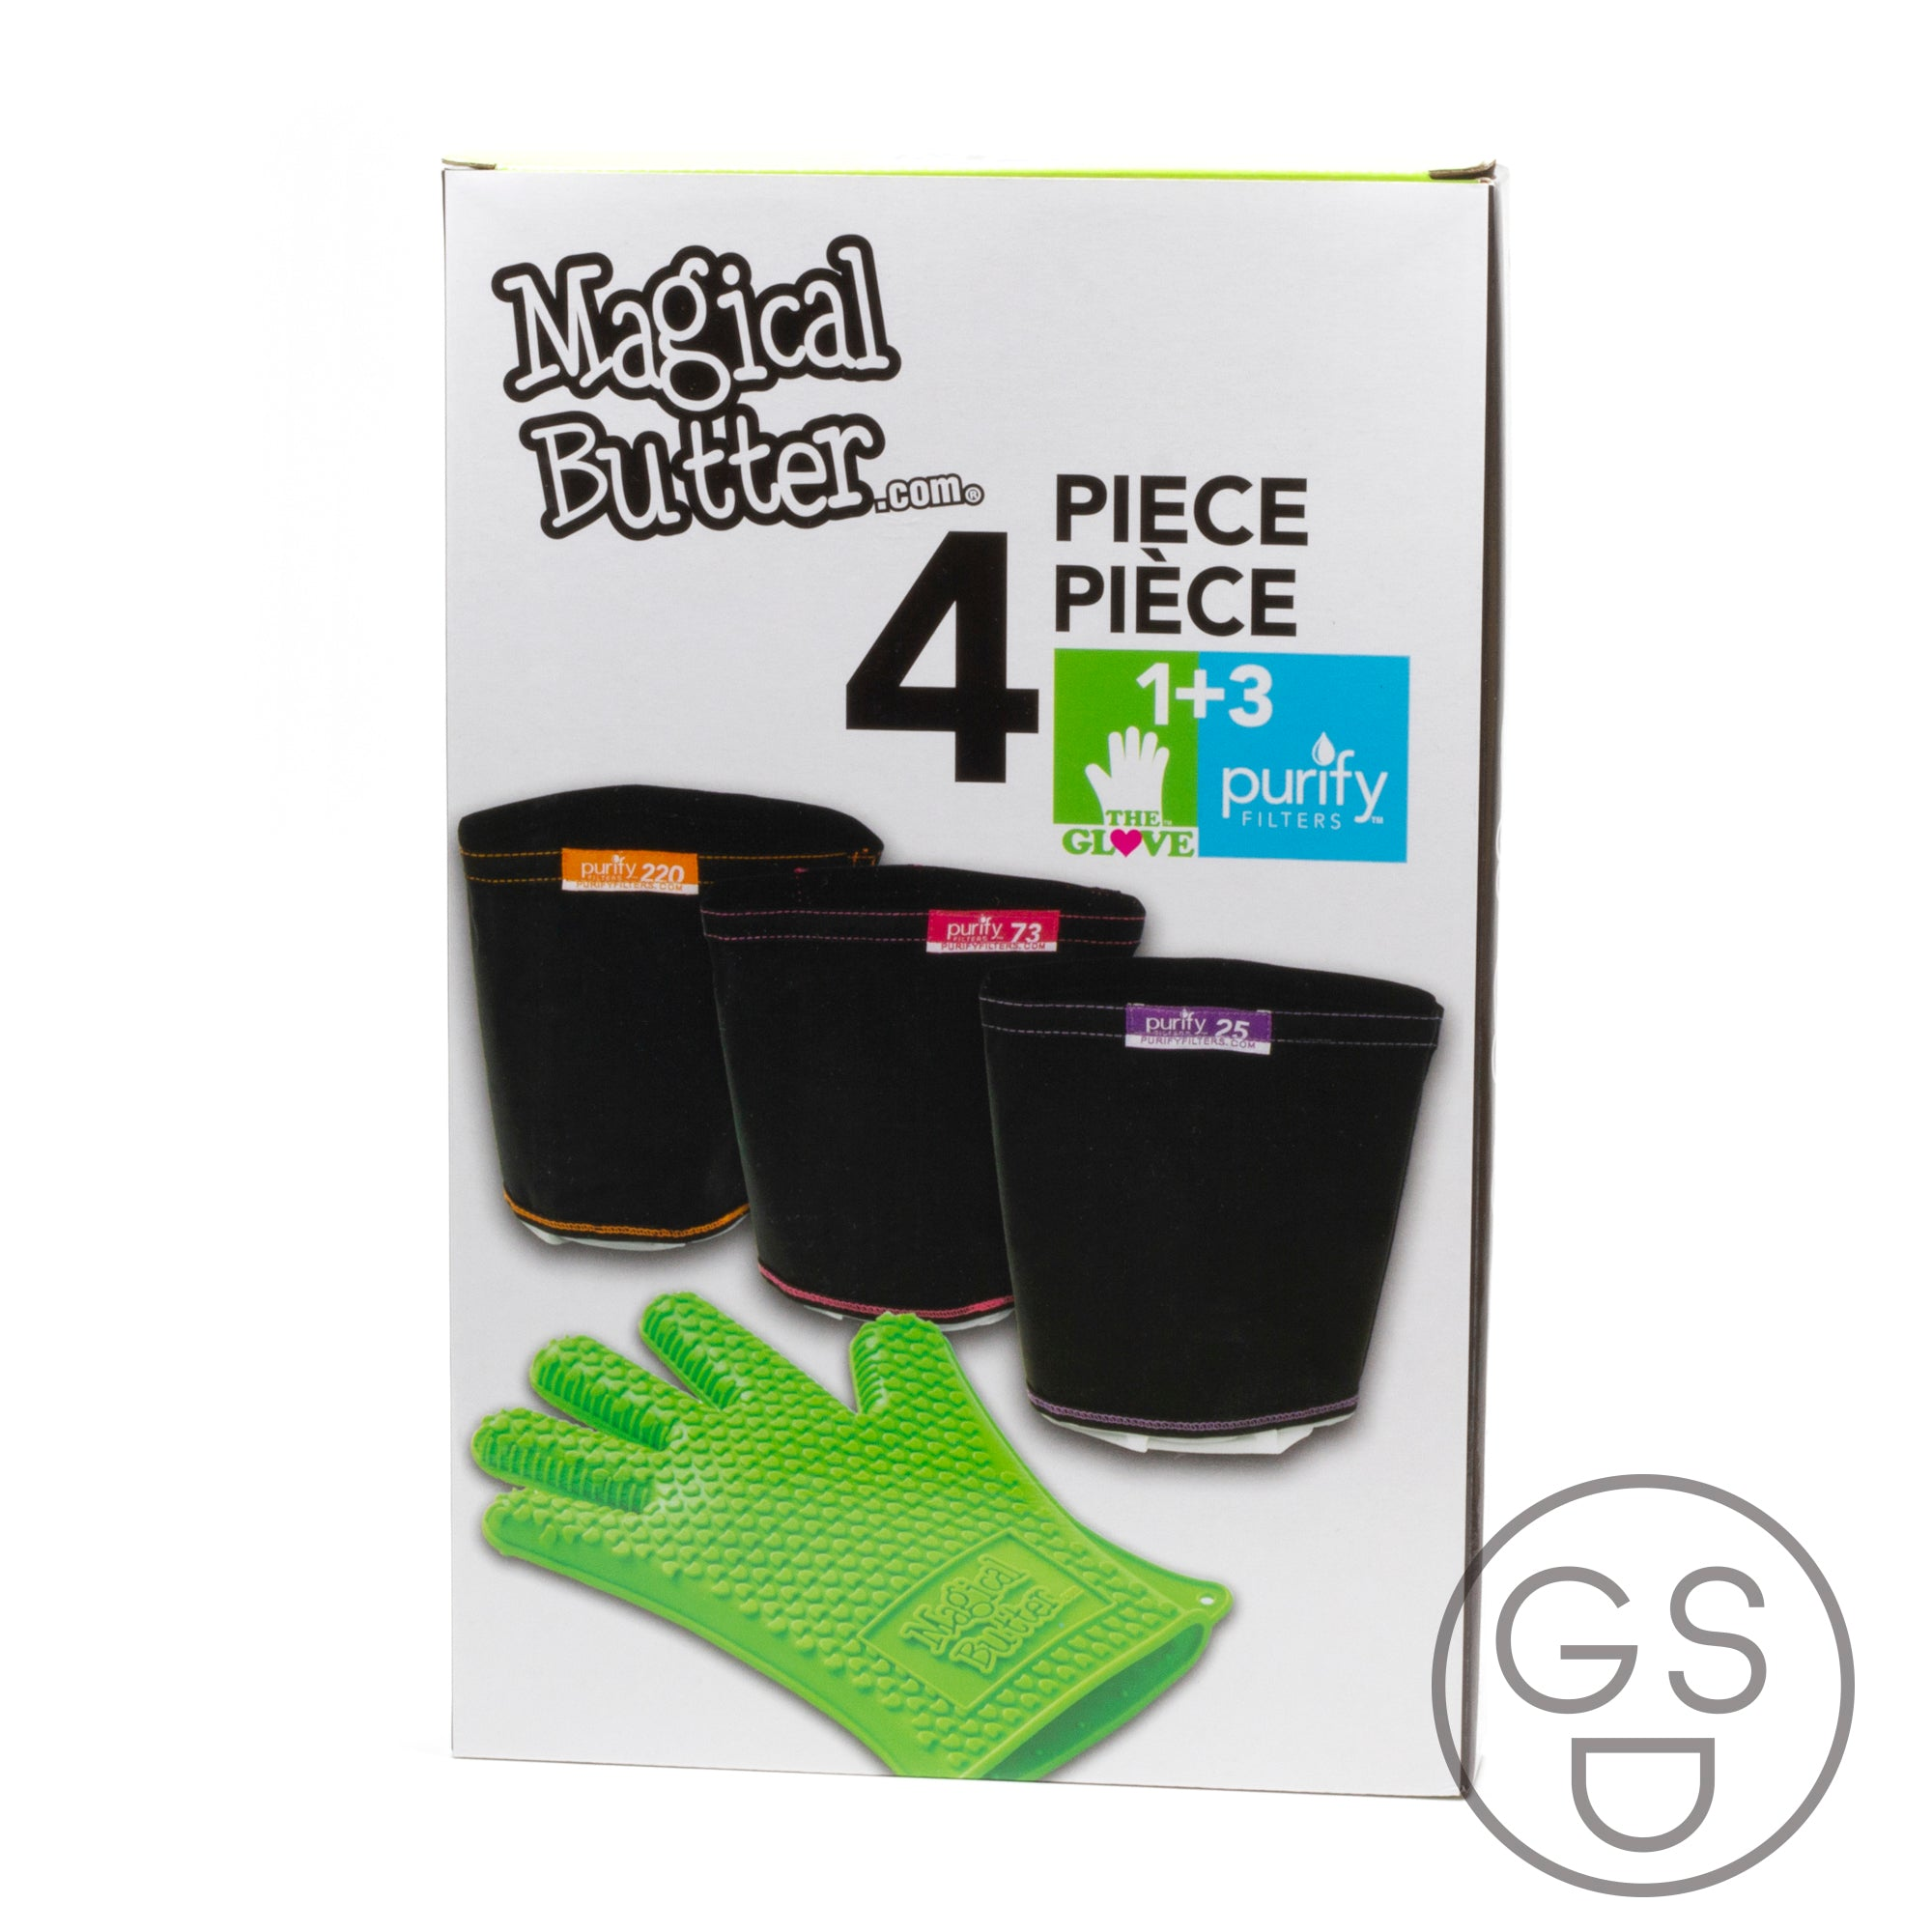 Magical Butter 4-Pack Filter Bags and Glove